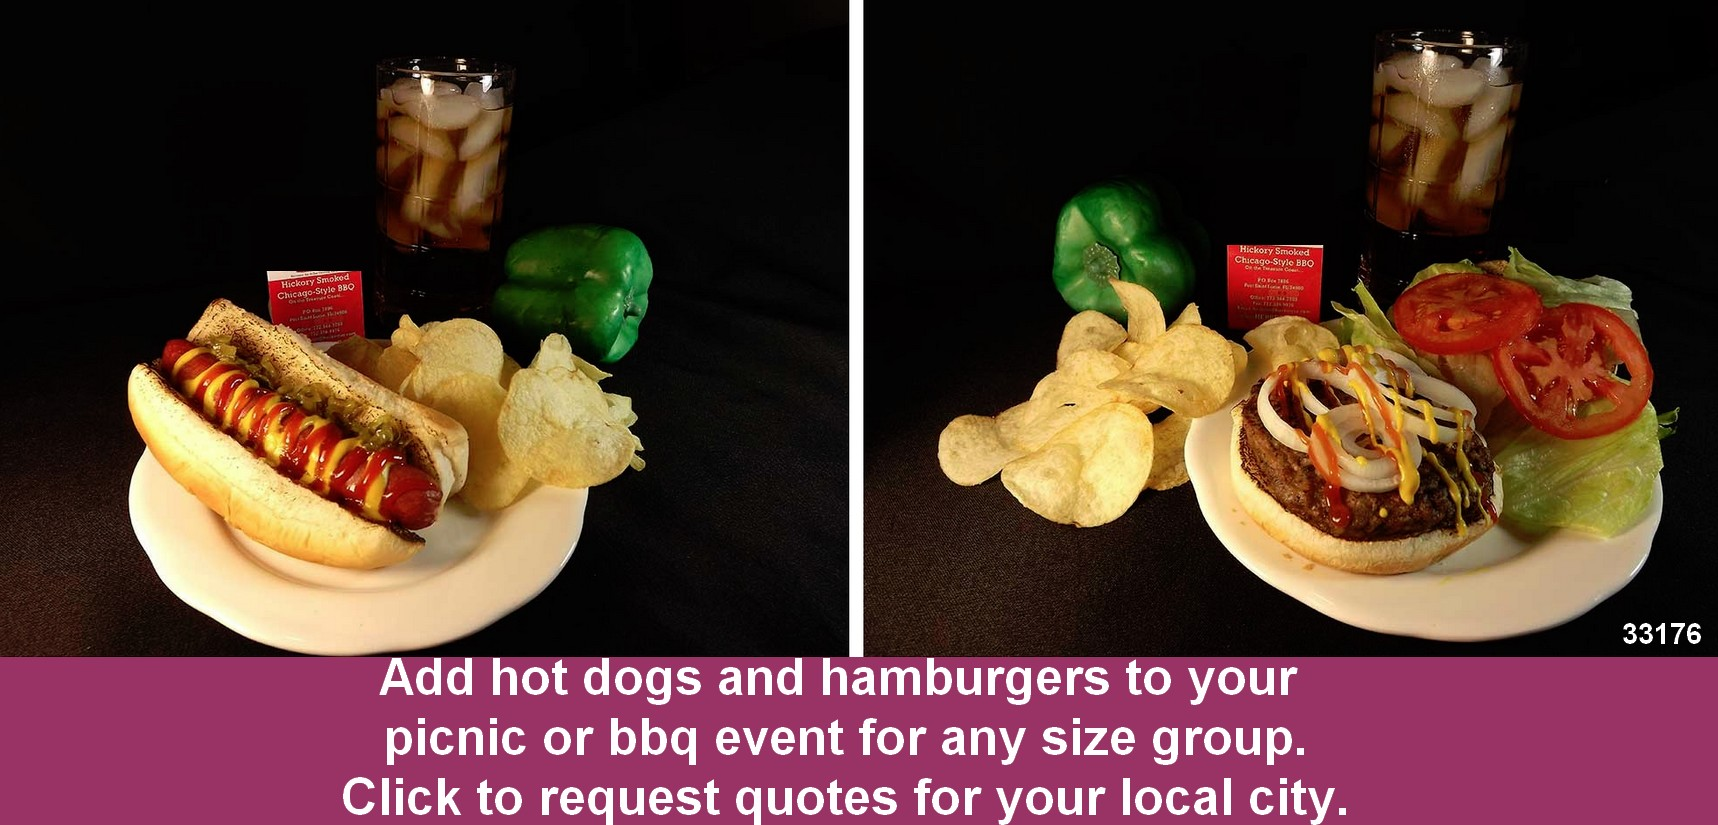 bbq catering hot dogs hamburgers corporate graduation picnic 33176